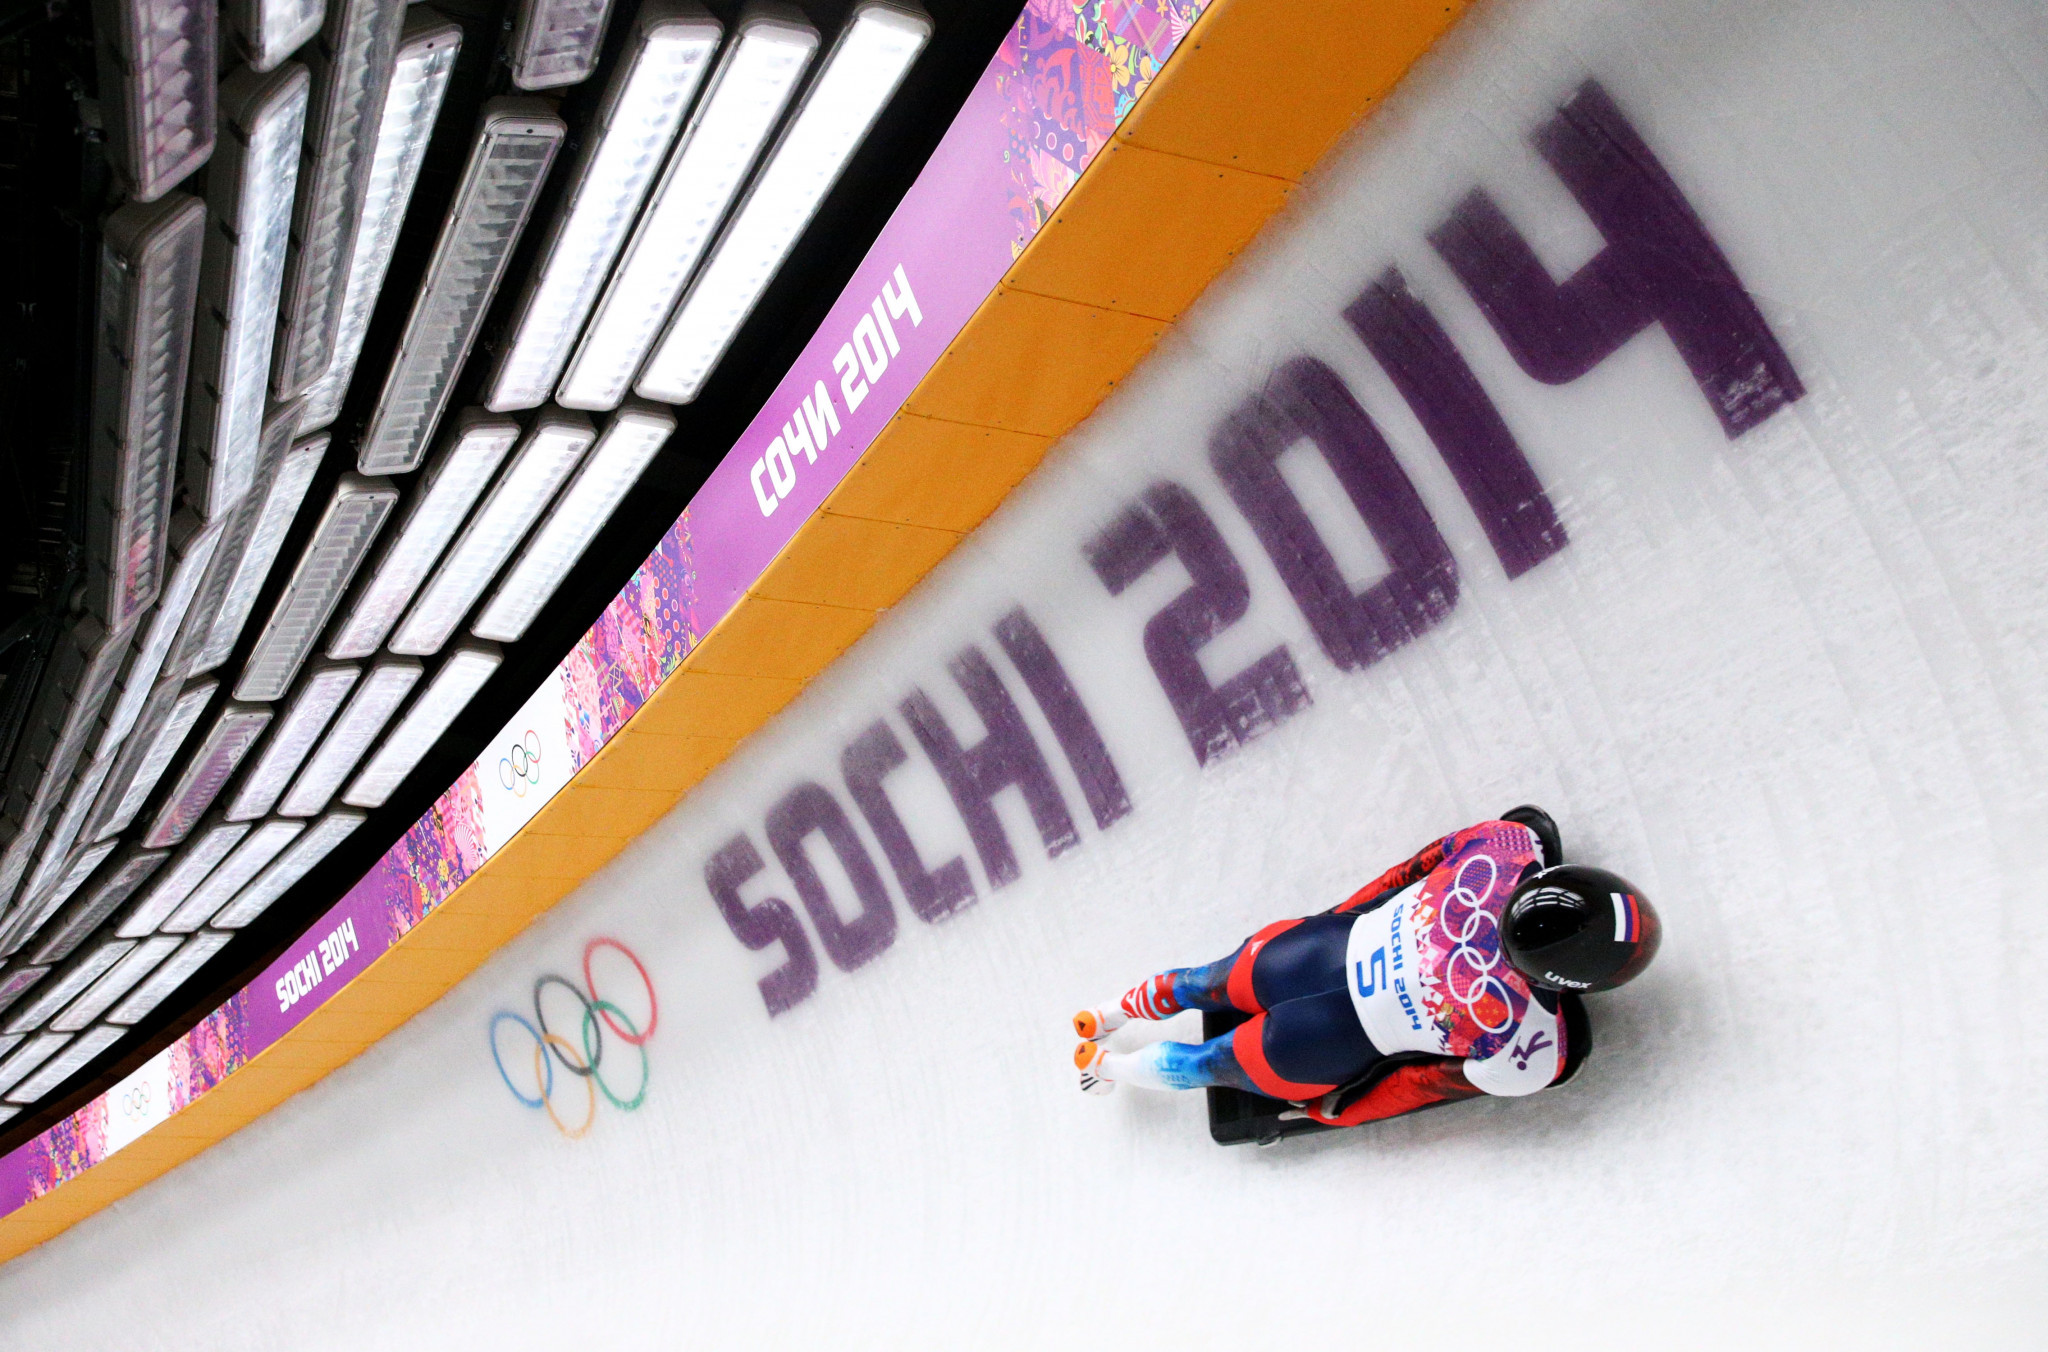 Aleksander Tretiakov, winner of the Olympic skeleton men's gold medal at Sochi 2014, was among the Russian athletes cleared last month by the Court of Arbitration for Sport ©Getty Images